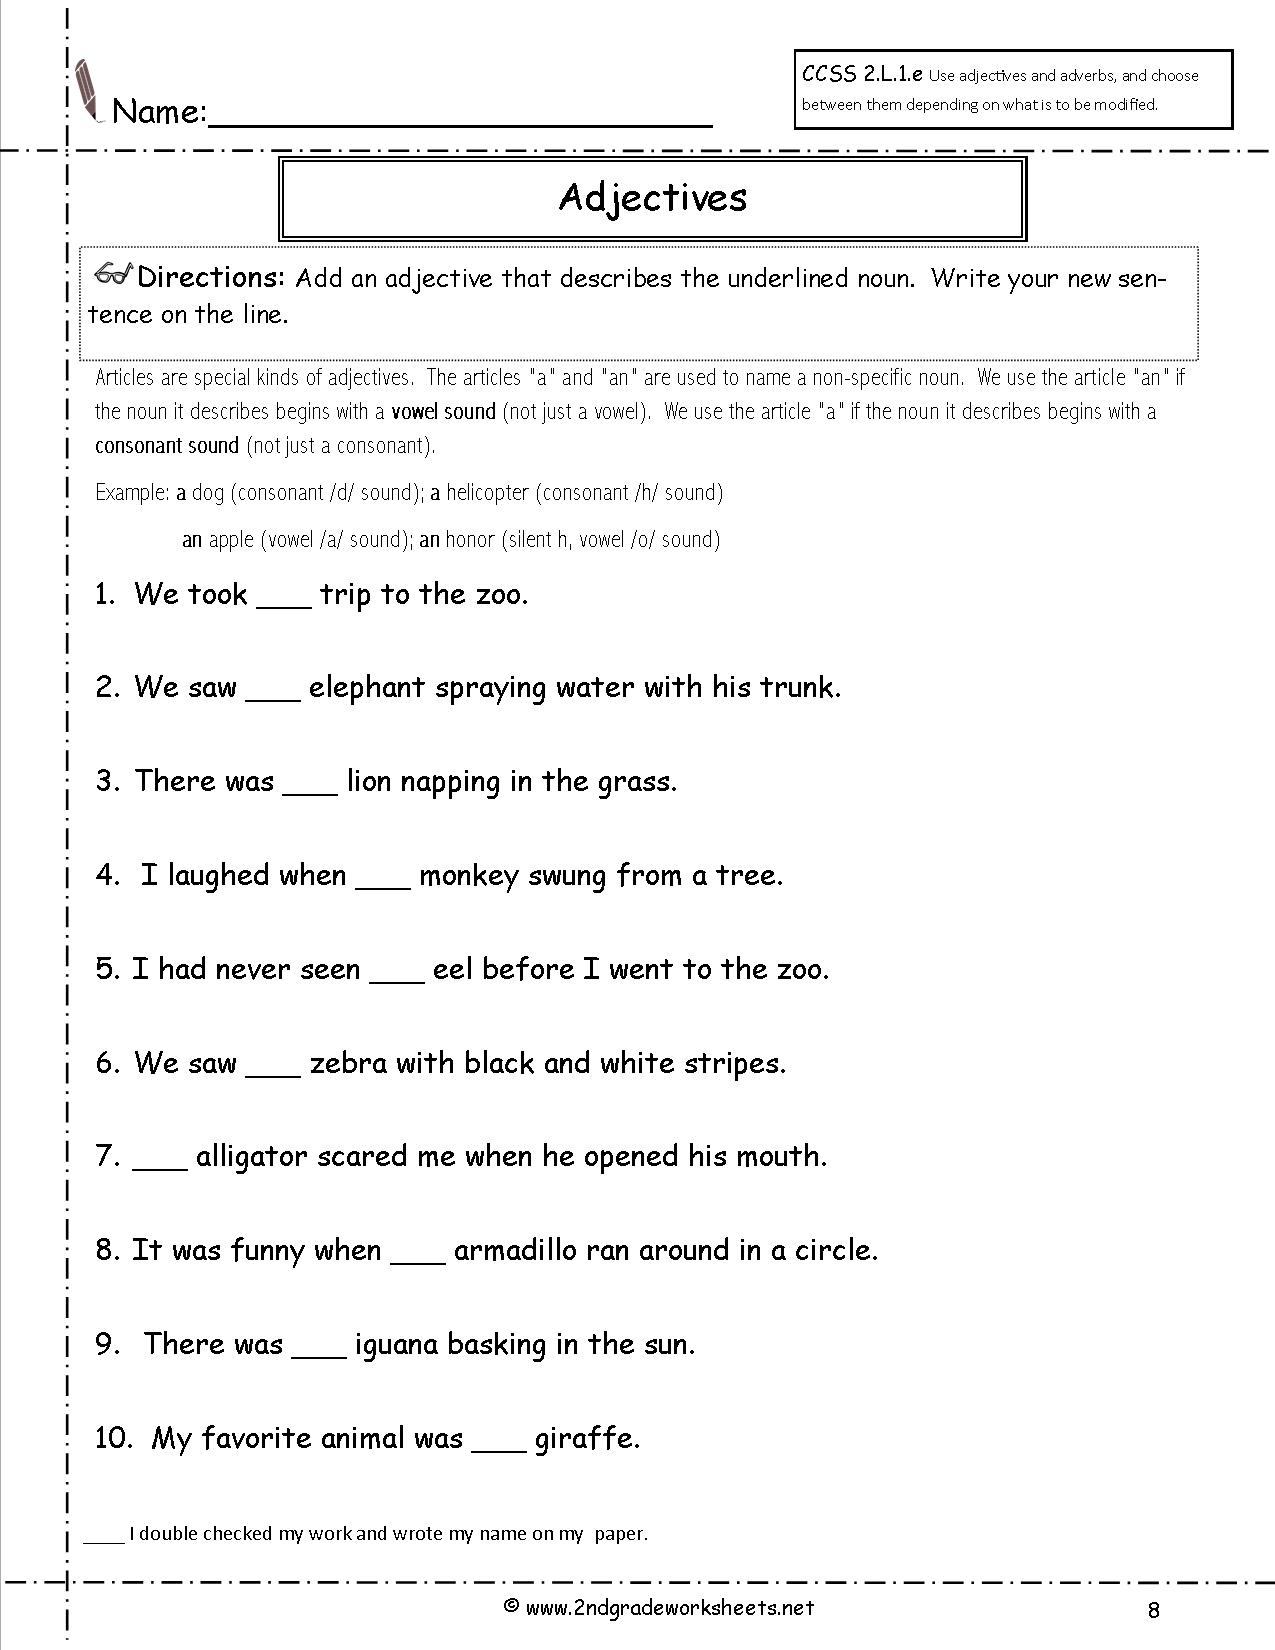 Free Language/grammar Worksheets And Printouts | 3Rd Grade Grammar Free Printable Worksheets